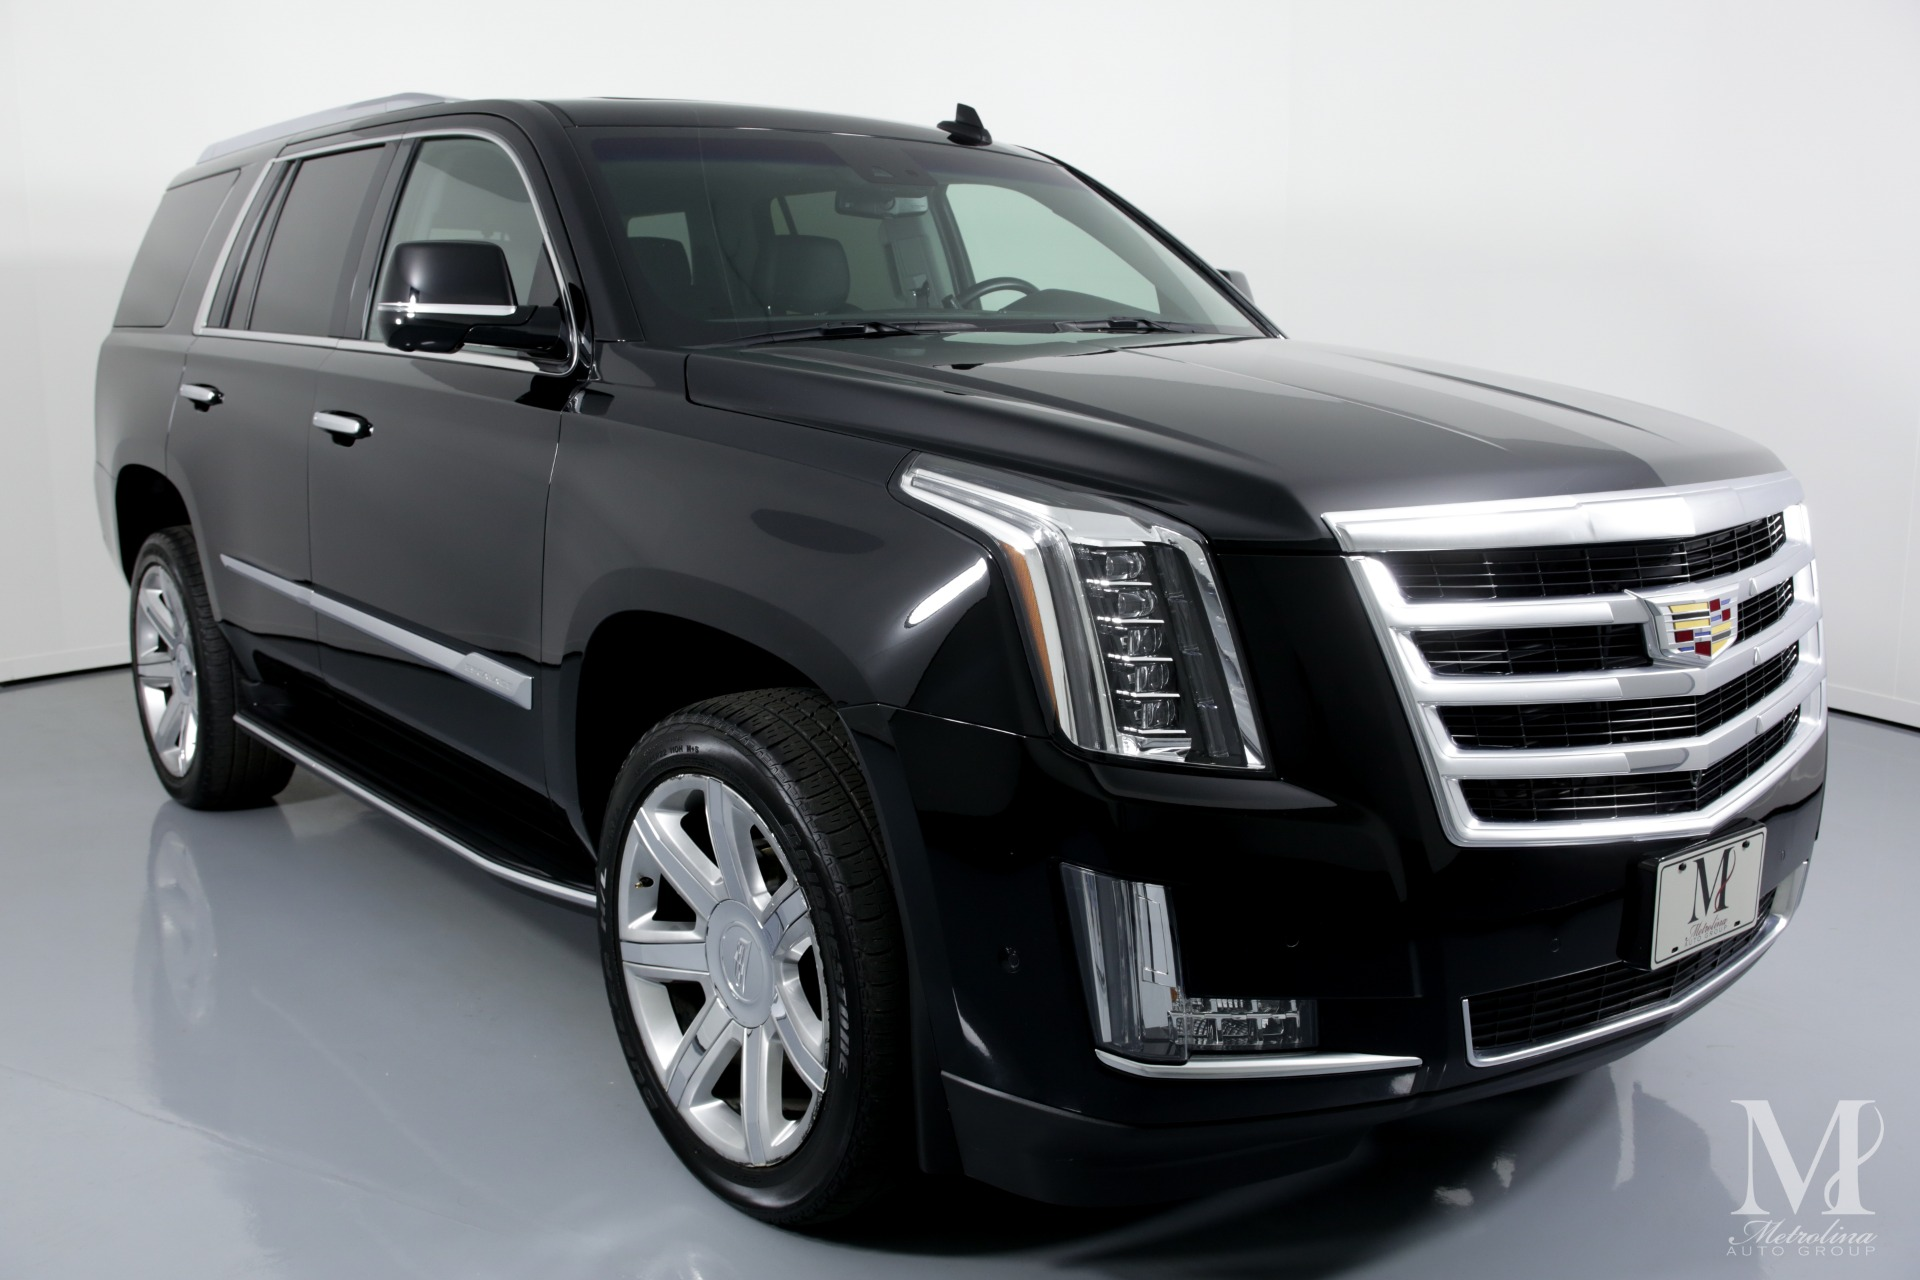 Used 2017 Cadillac Escalade Luxury 4x4 4dr SUV for sale $44,996 at Metrolina Auto Group in Charlotte NC 28217 - 2